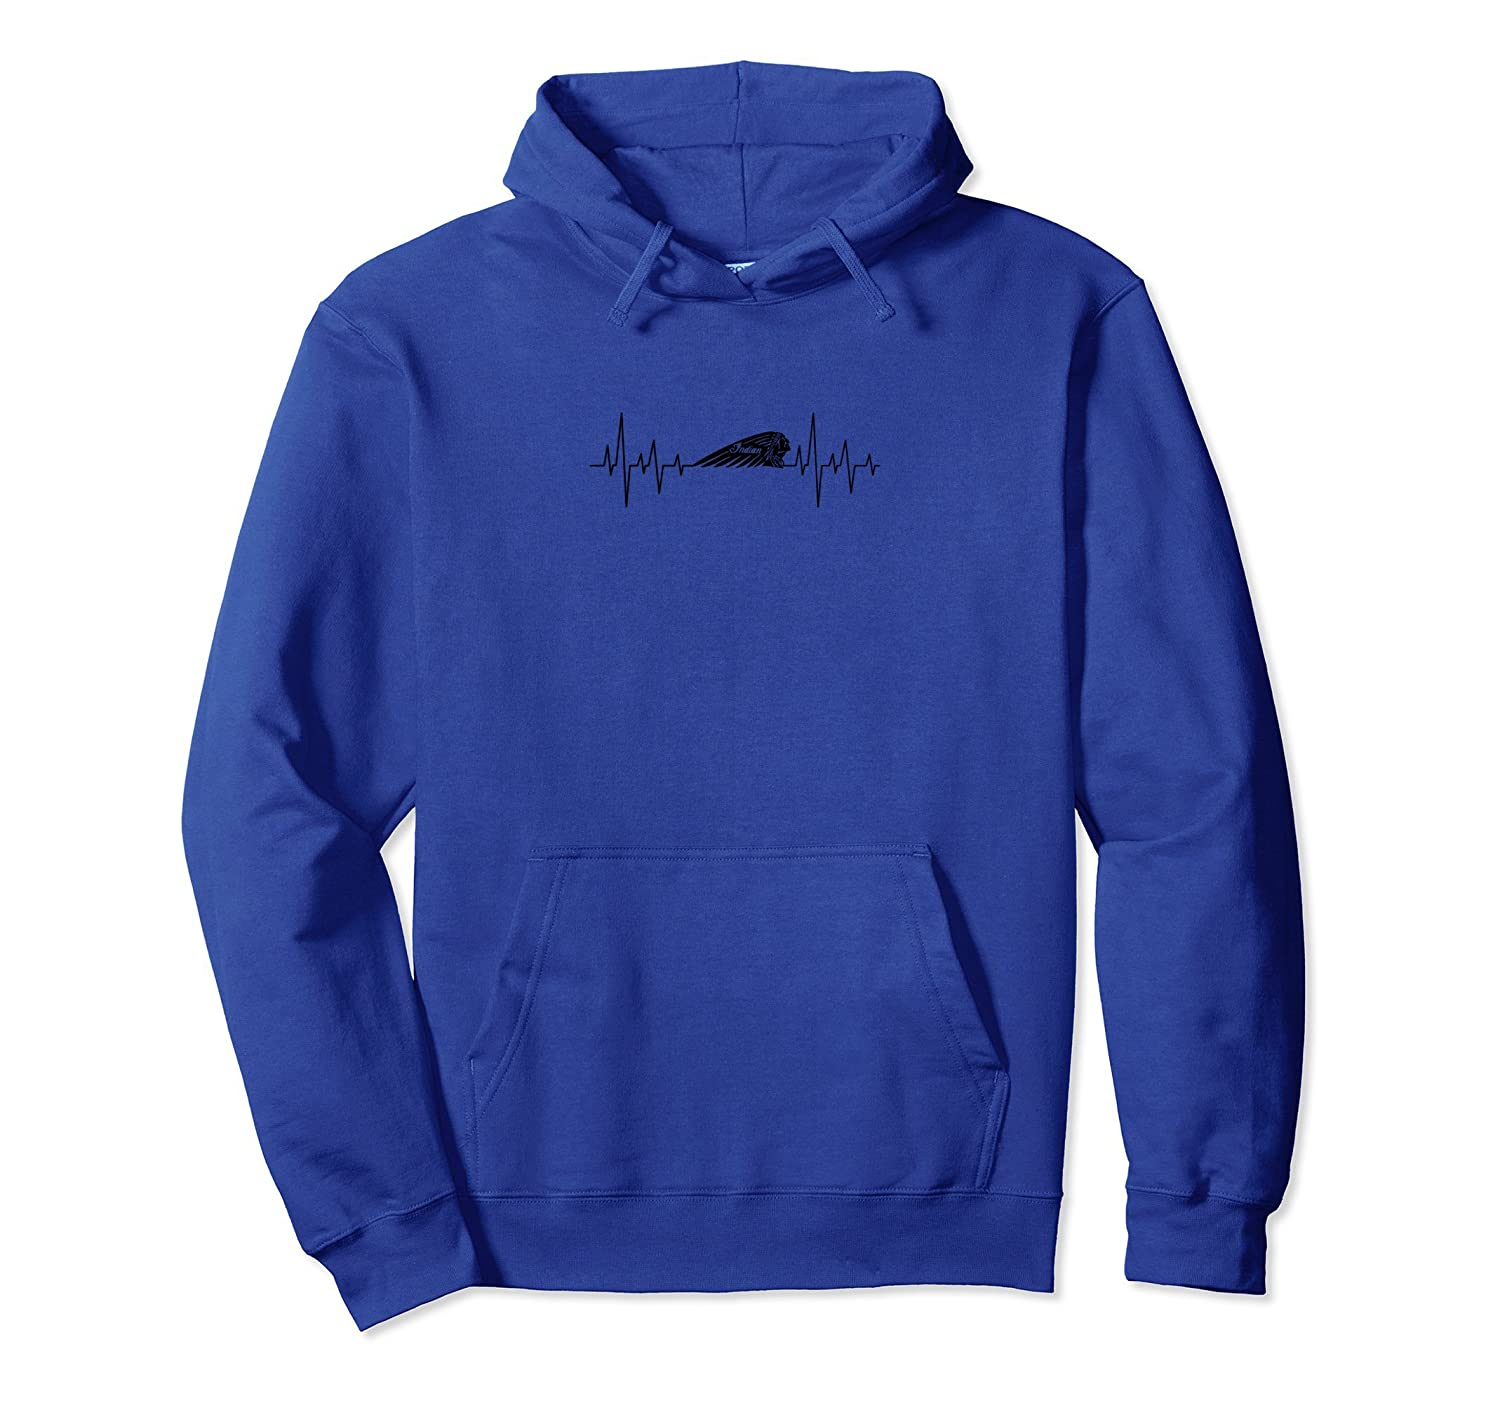 Indian Heartbeat Motorcycle Fan Hoodie Sweater-Colonhue